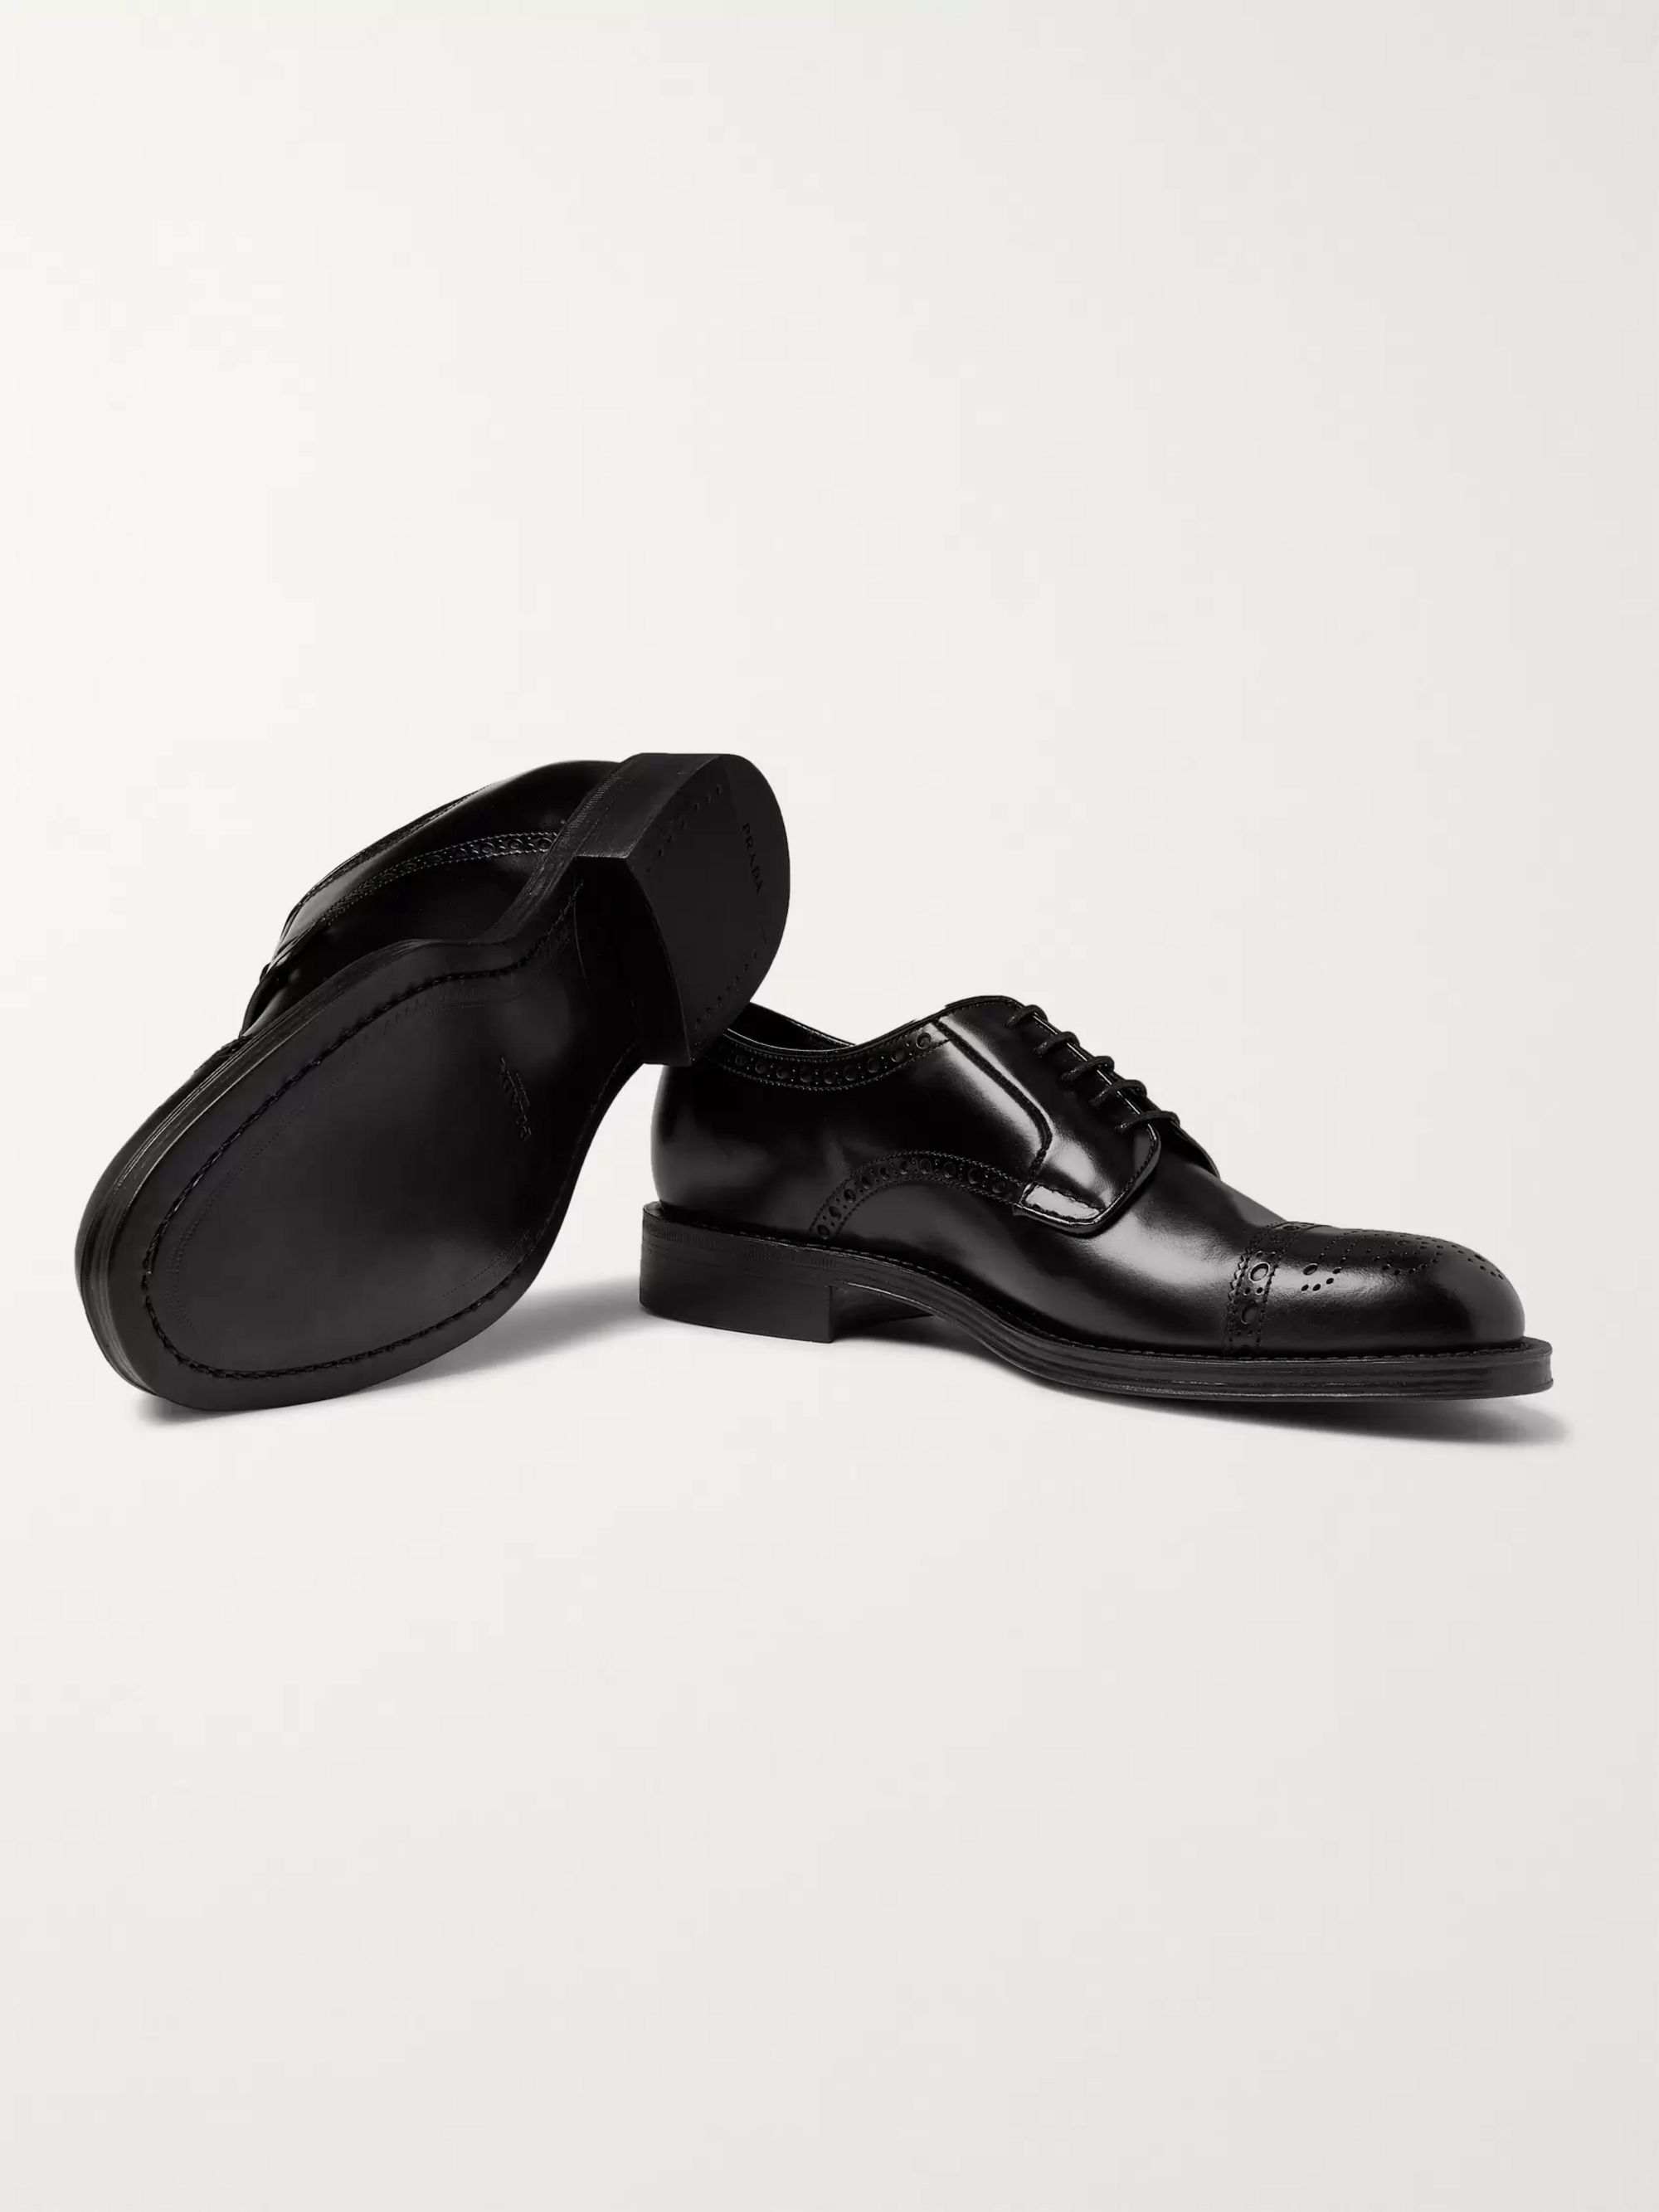 Prada Leather Brogues